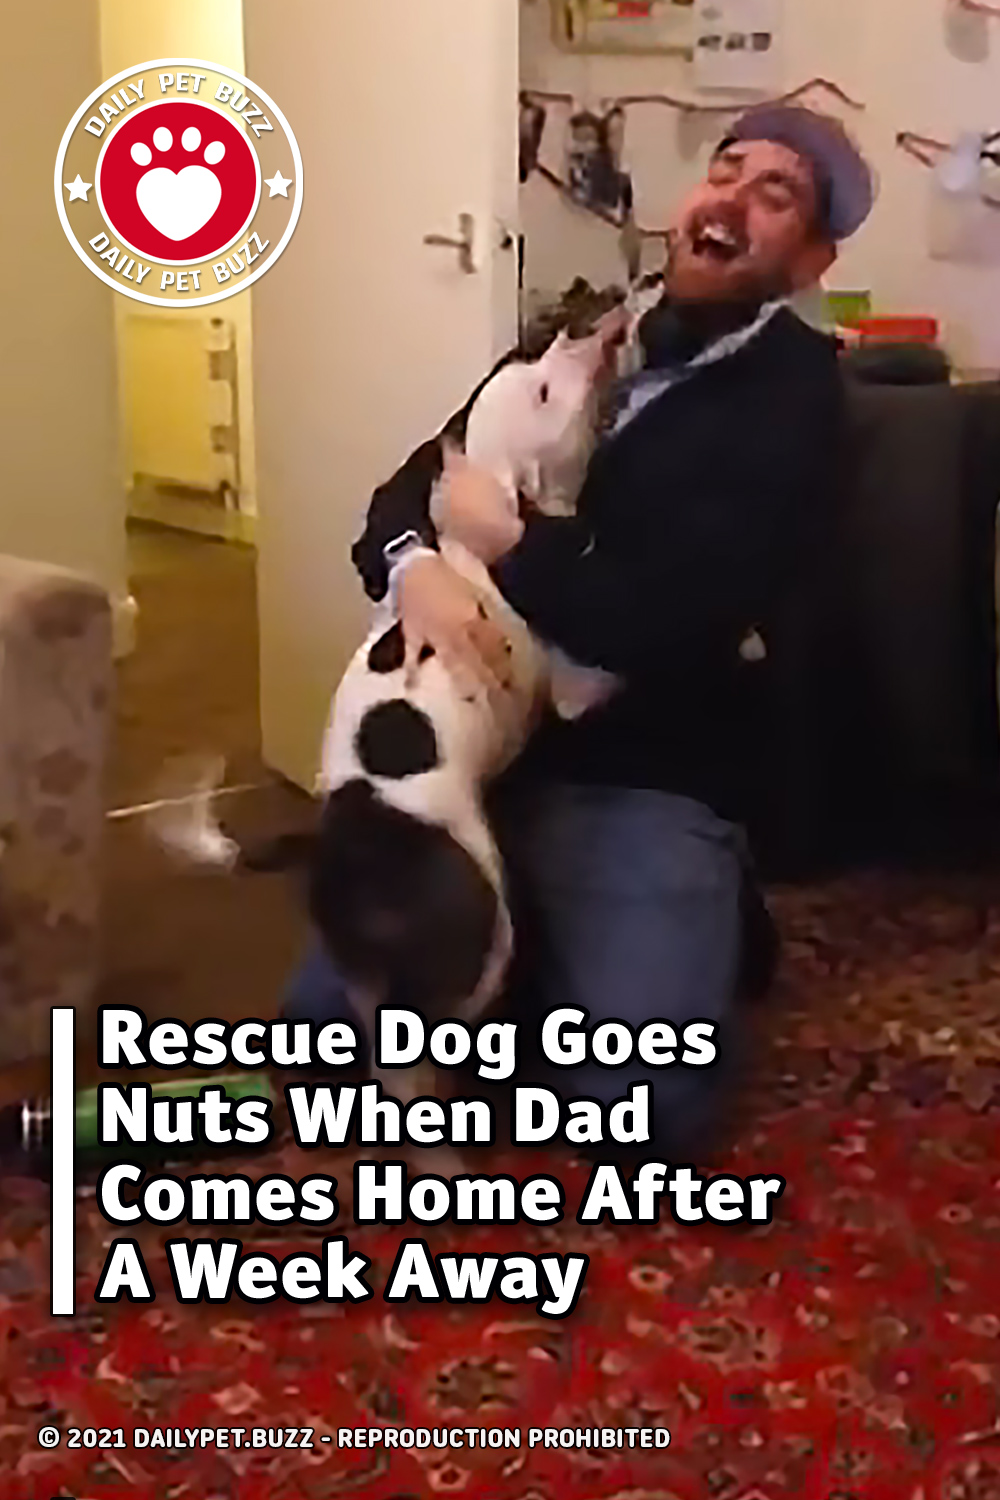 Rescue Dog Goes Nuts When Dad Comes Home After A Week Away